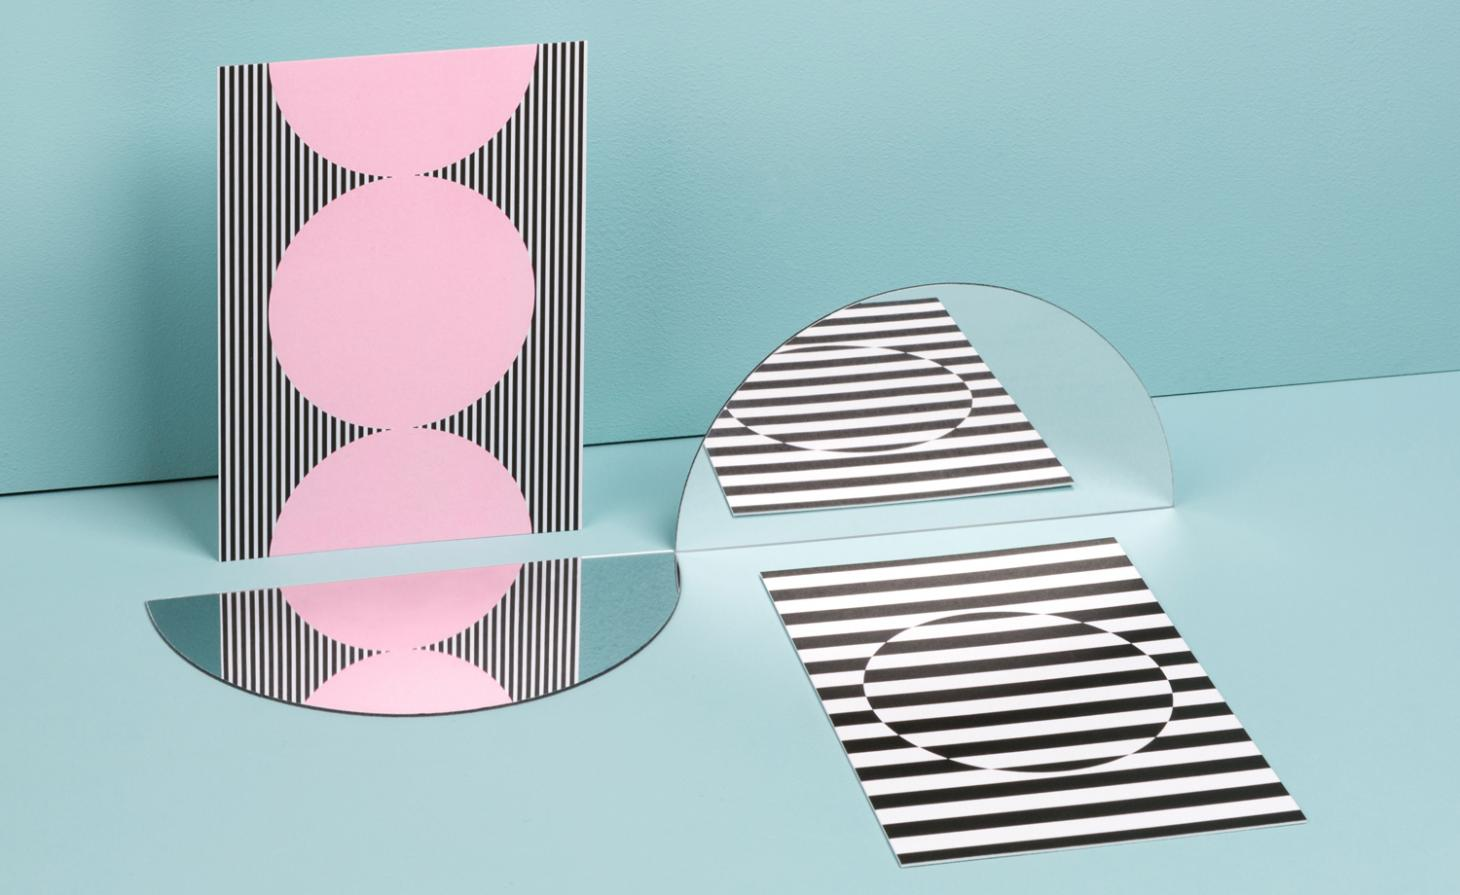 Patternity and Moo Postcards for mindfulness